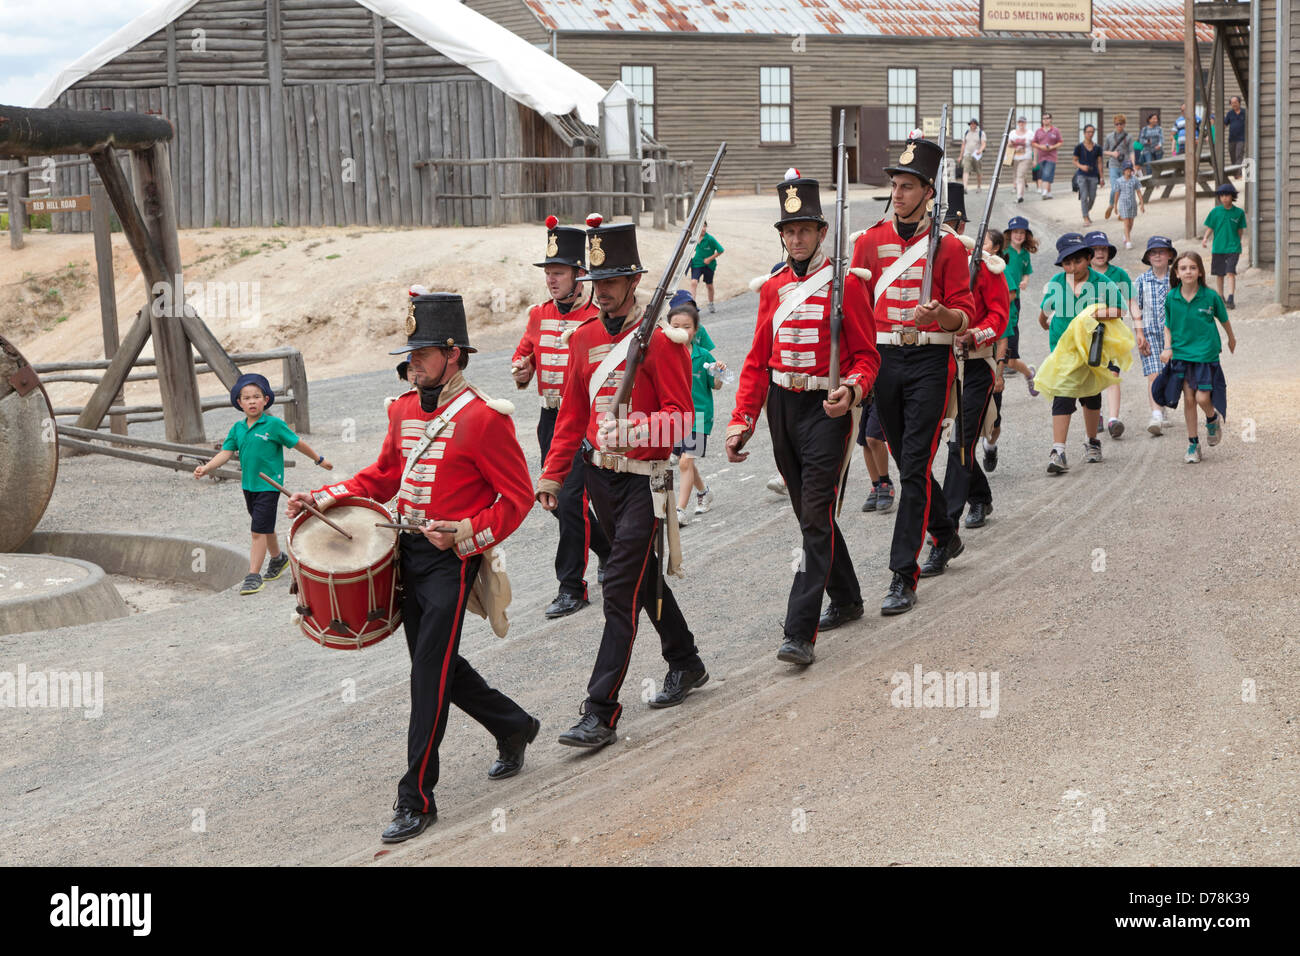 A patrol of British Redcoat soldiers march in formation in Sovereign Hill's former gold mining site in Ballarat, - Stock Image